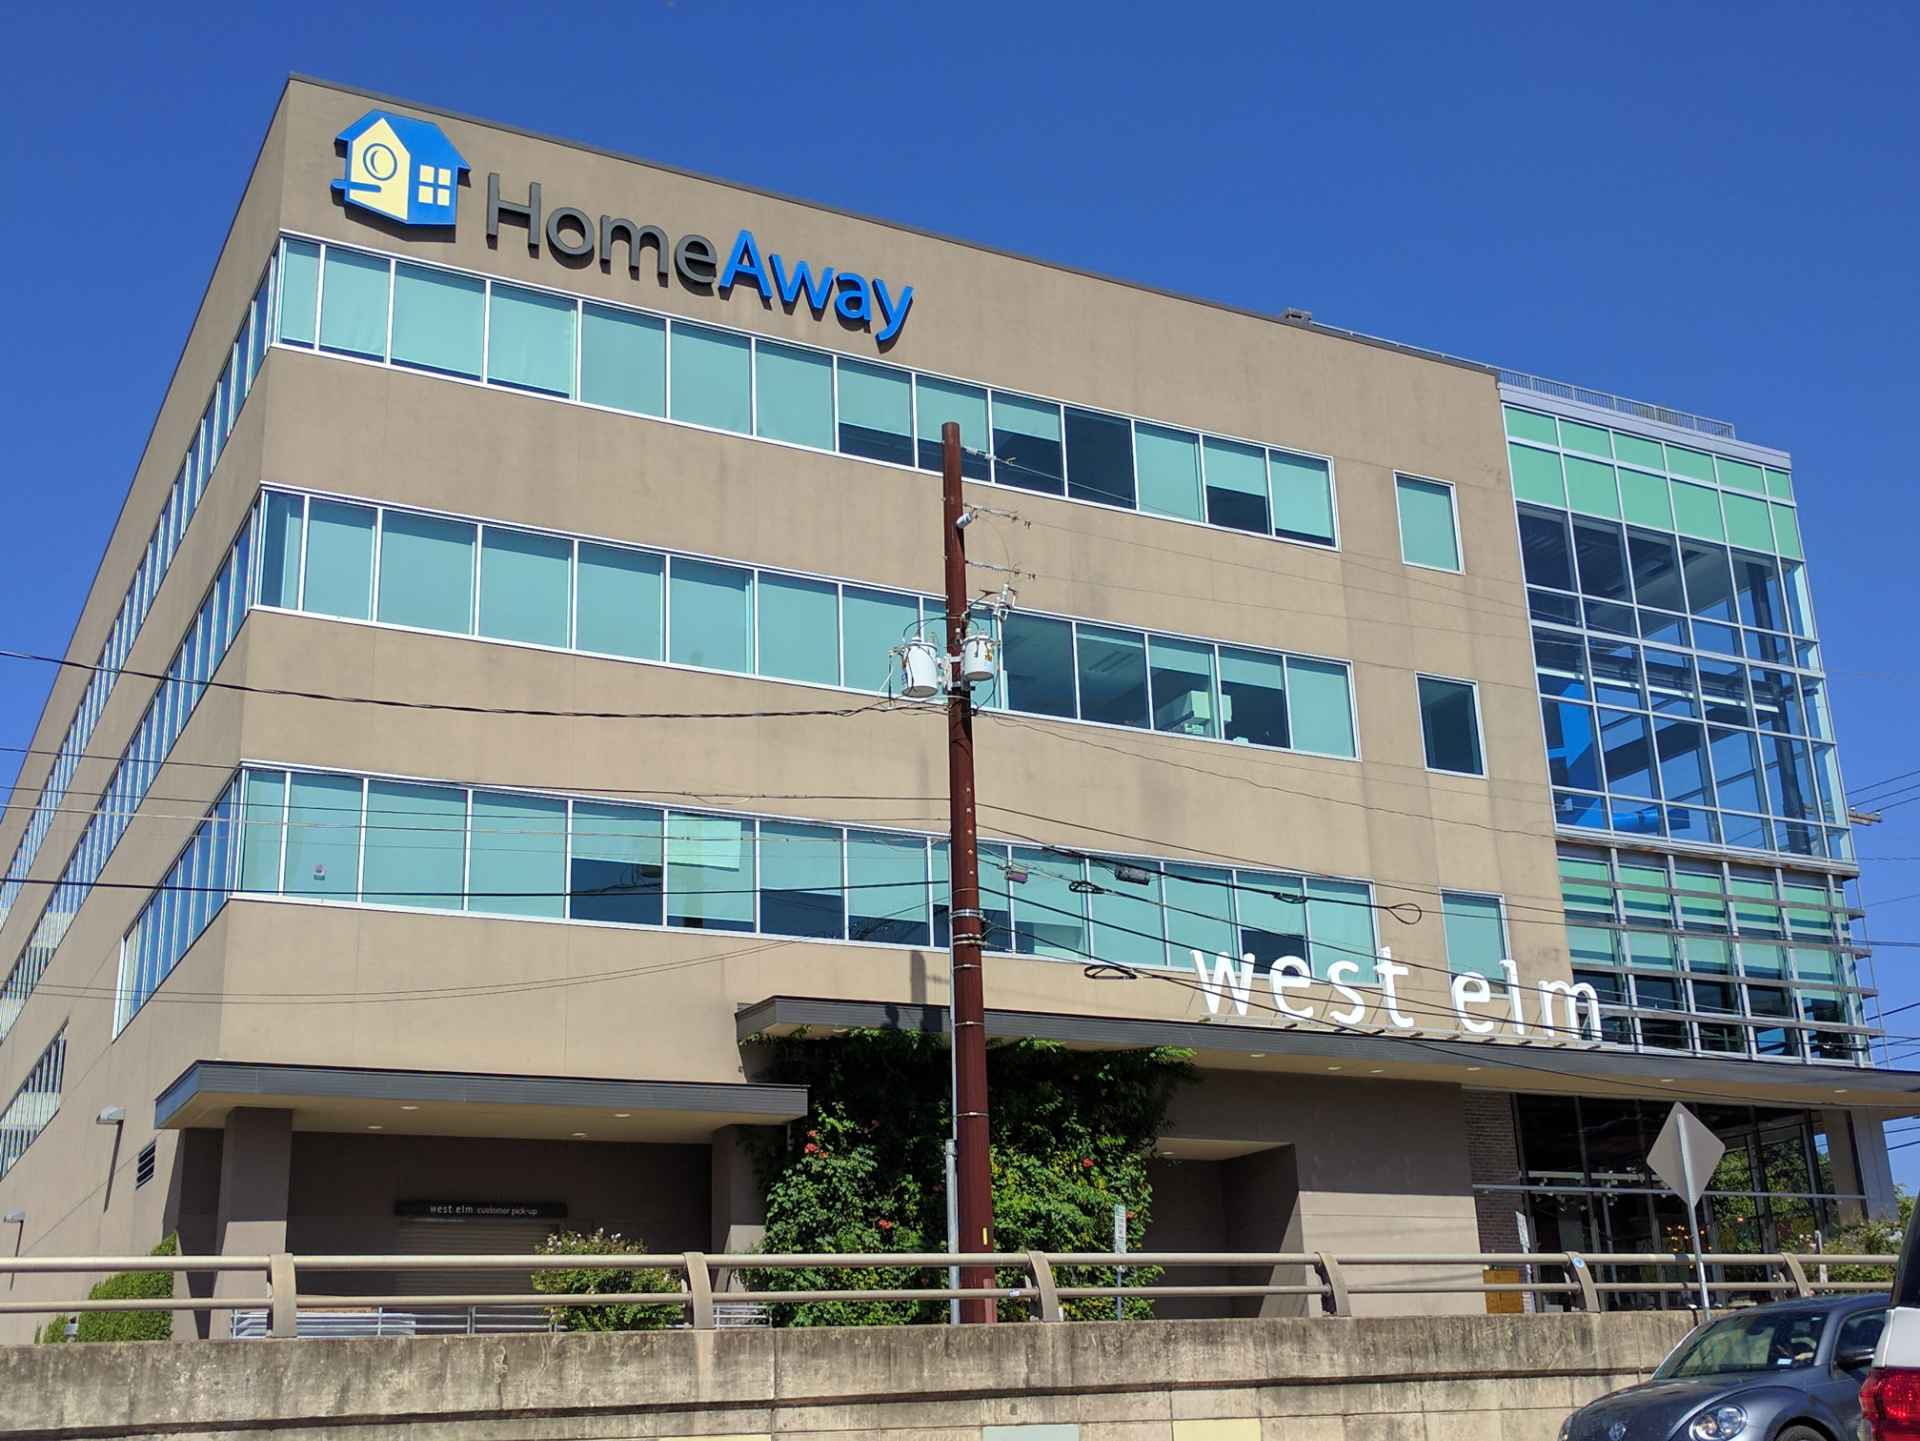 HomeAway office in downtown Austin, Texas.